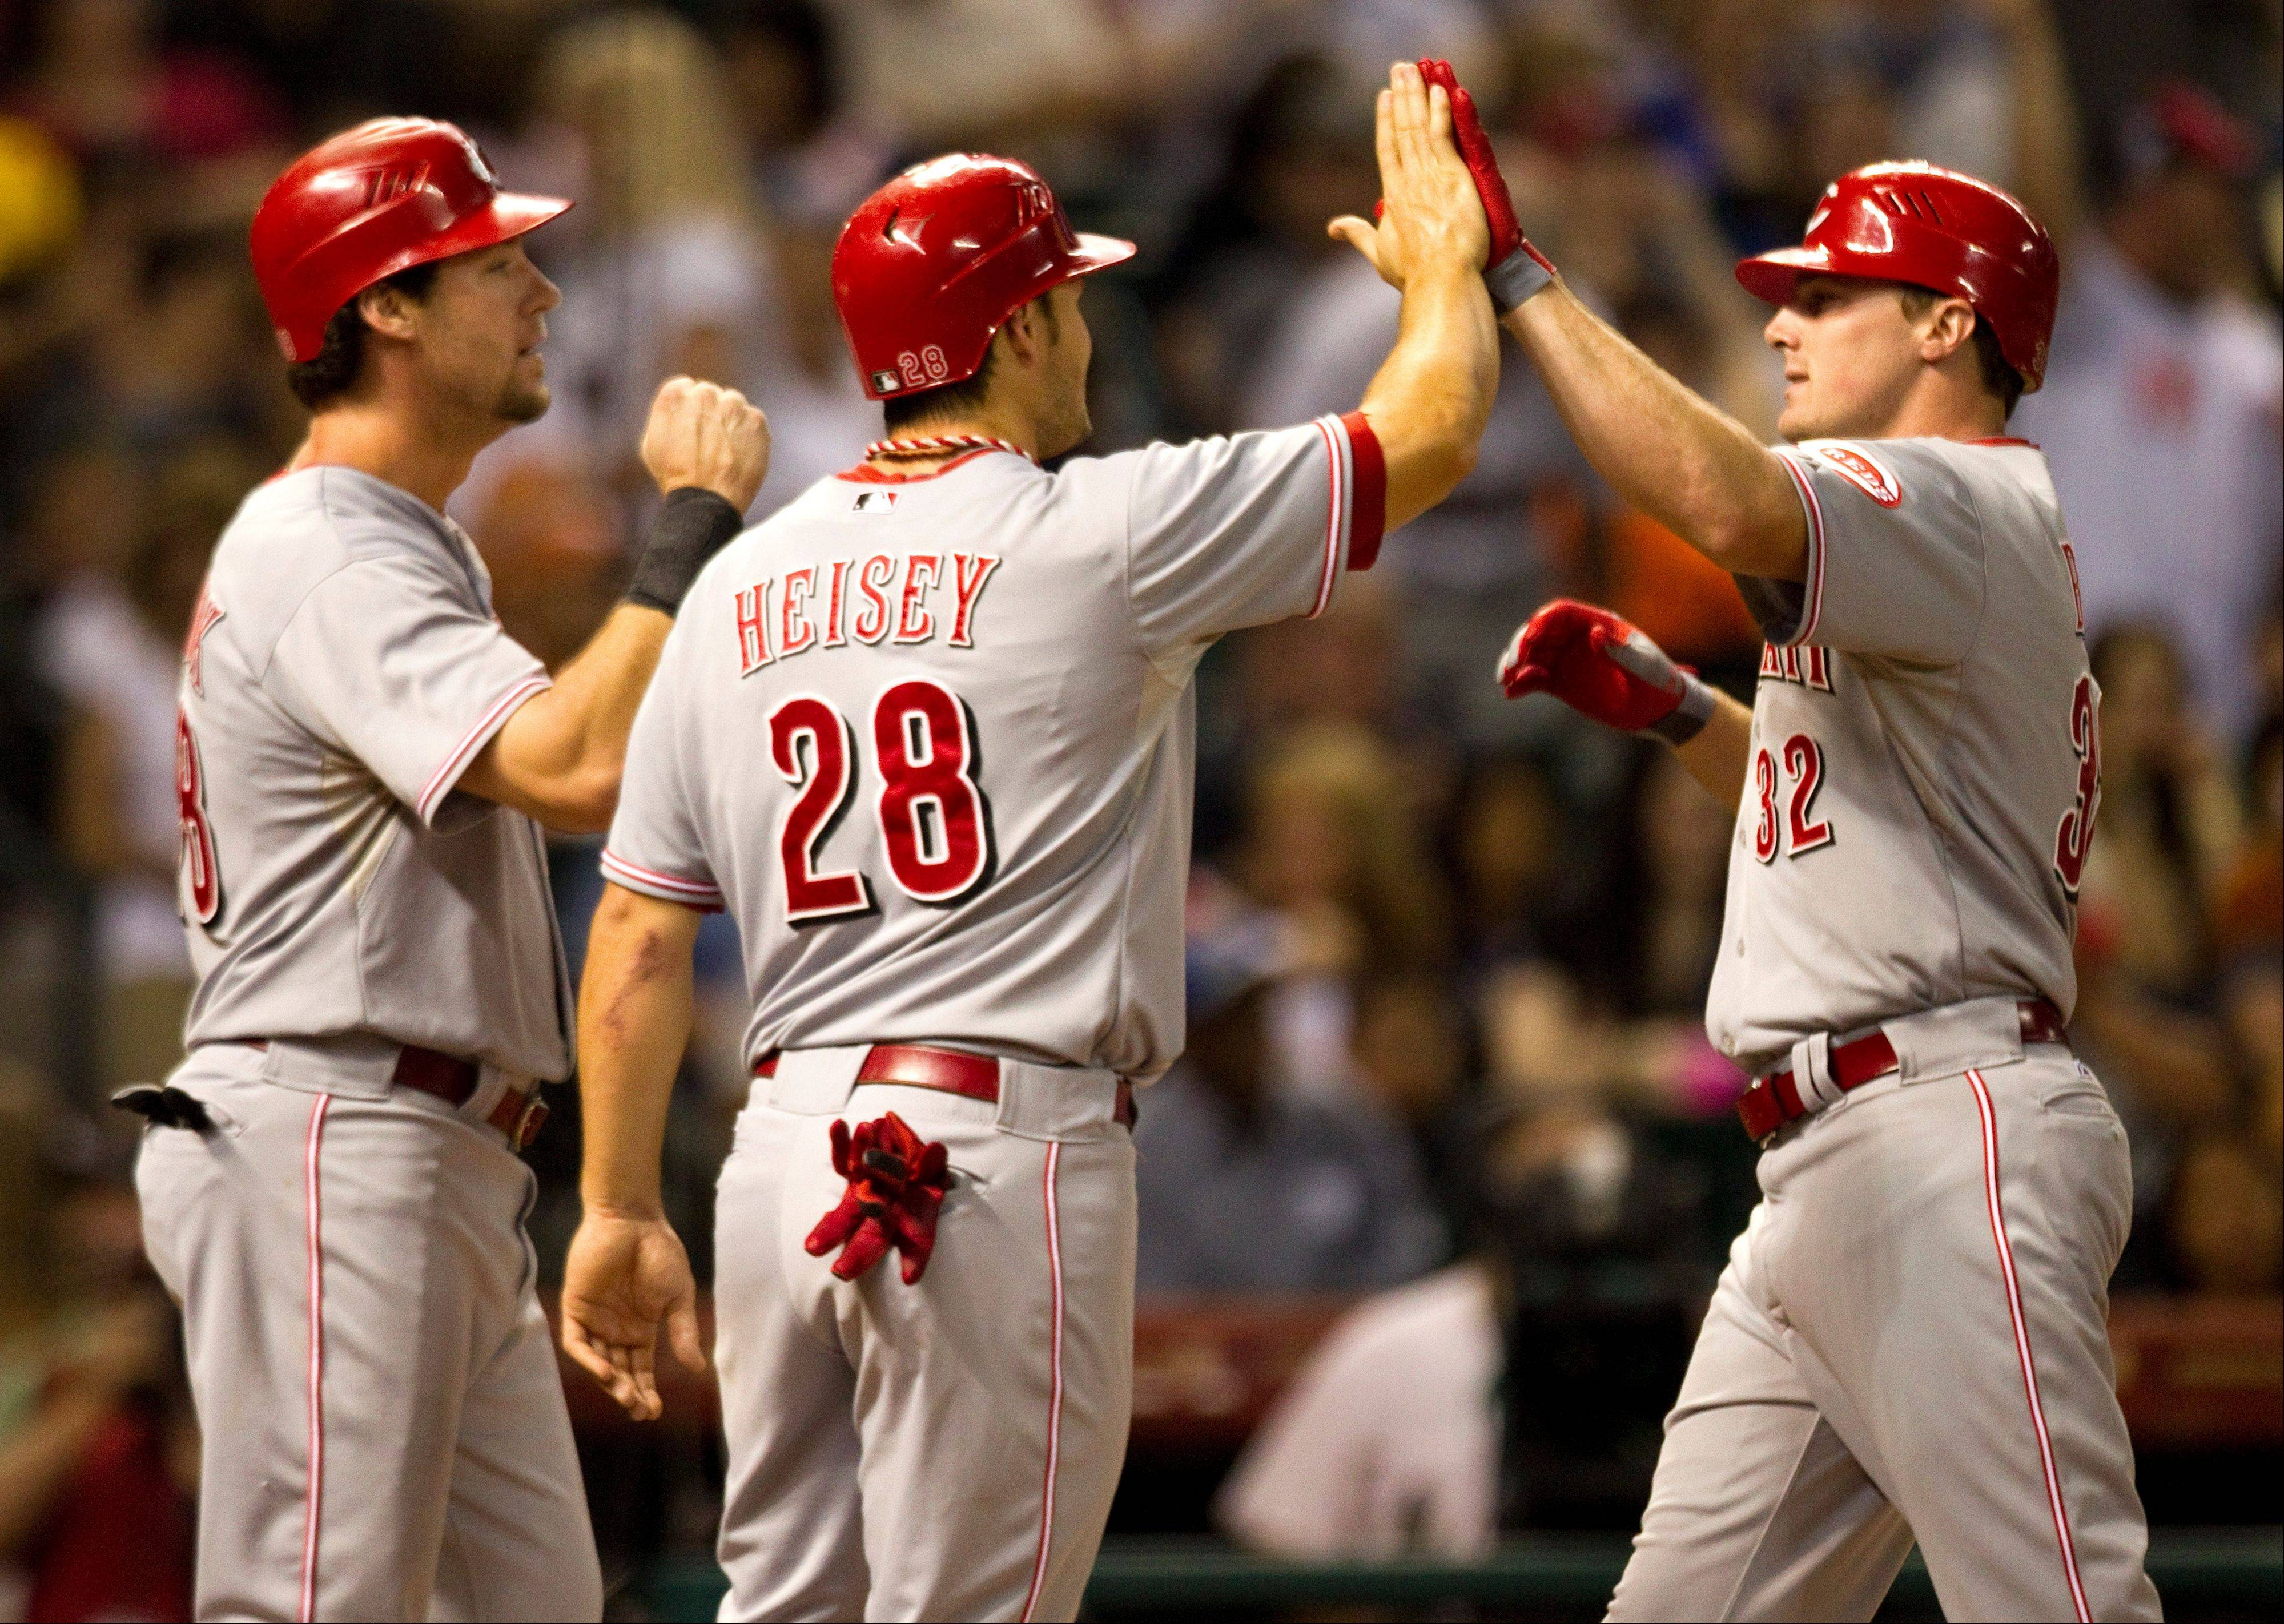 Reds right fielder Jay Bruce (32) is met at the plate by teammates Ryan Ludwick, left, and Chris Heisey after hitting a three-run home run during the fifth inning Friday in Houston.